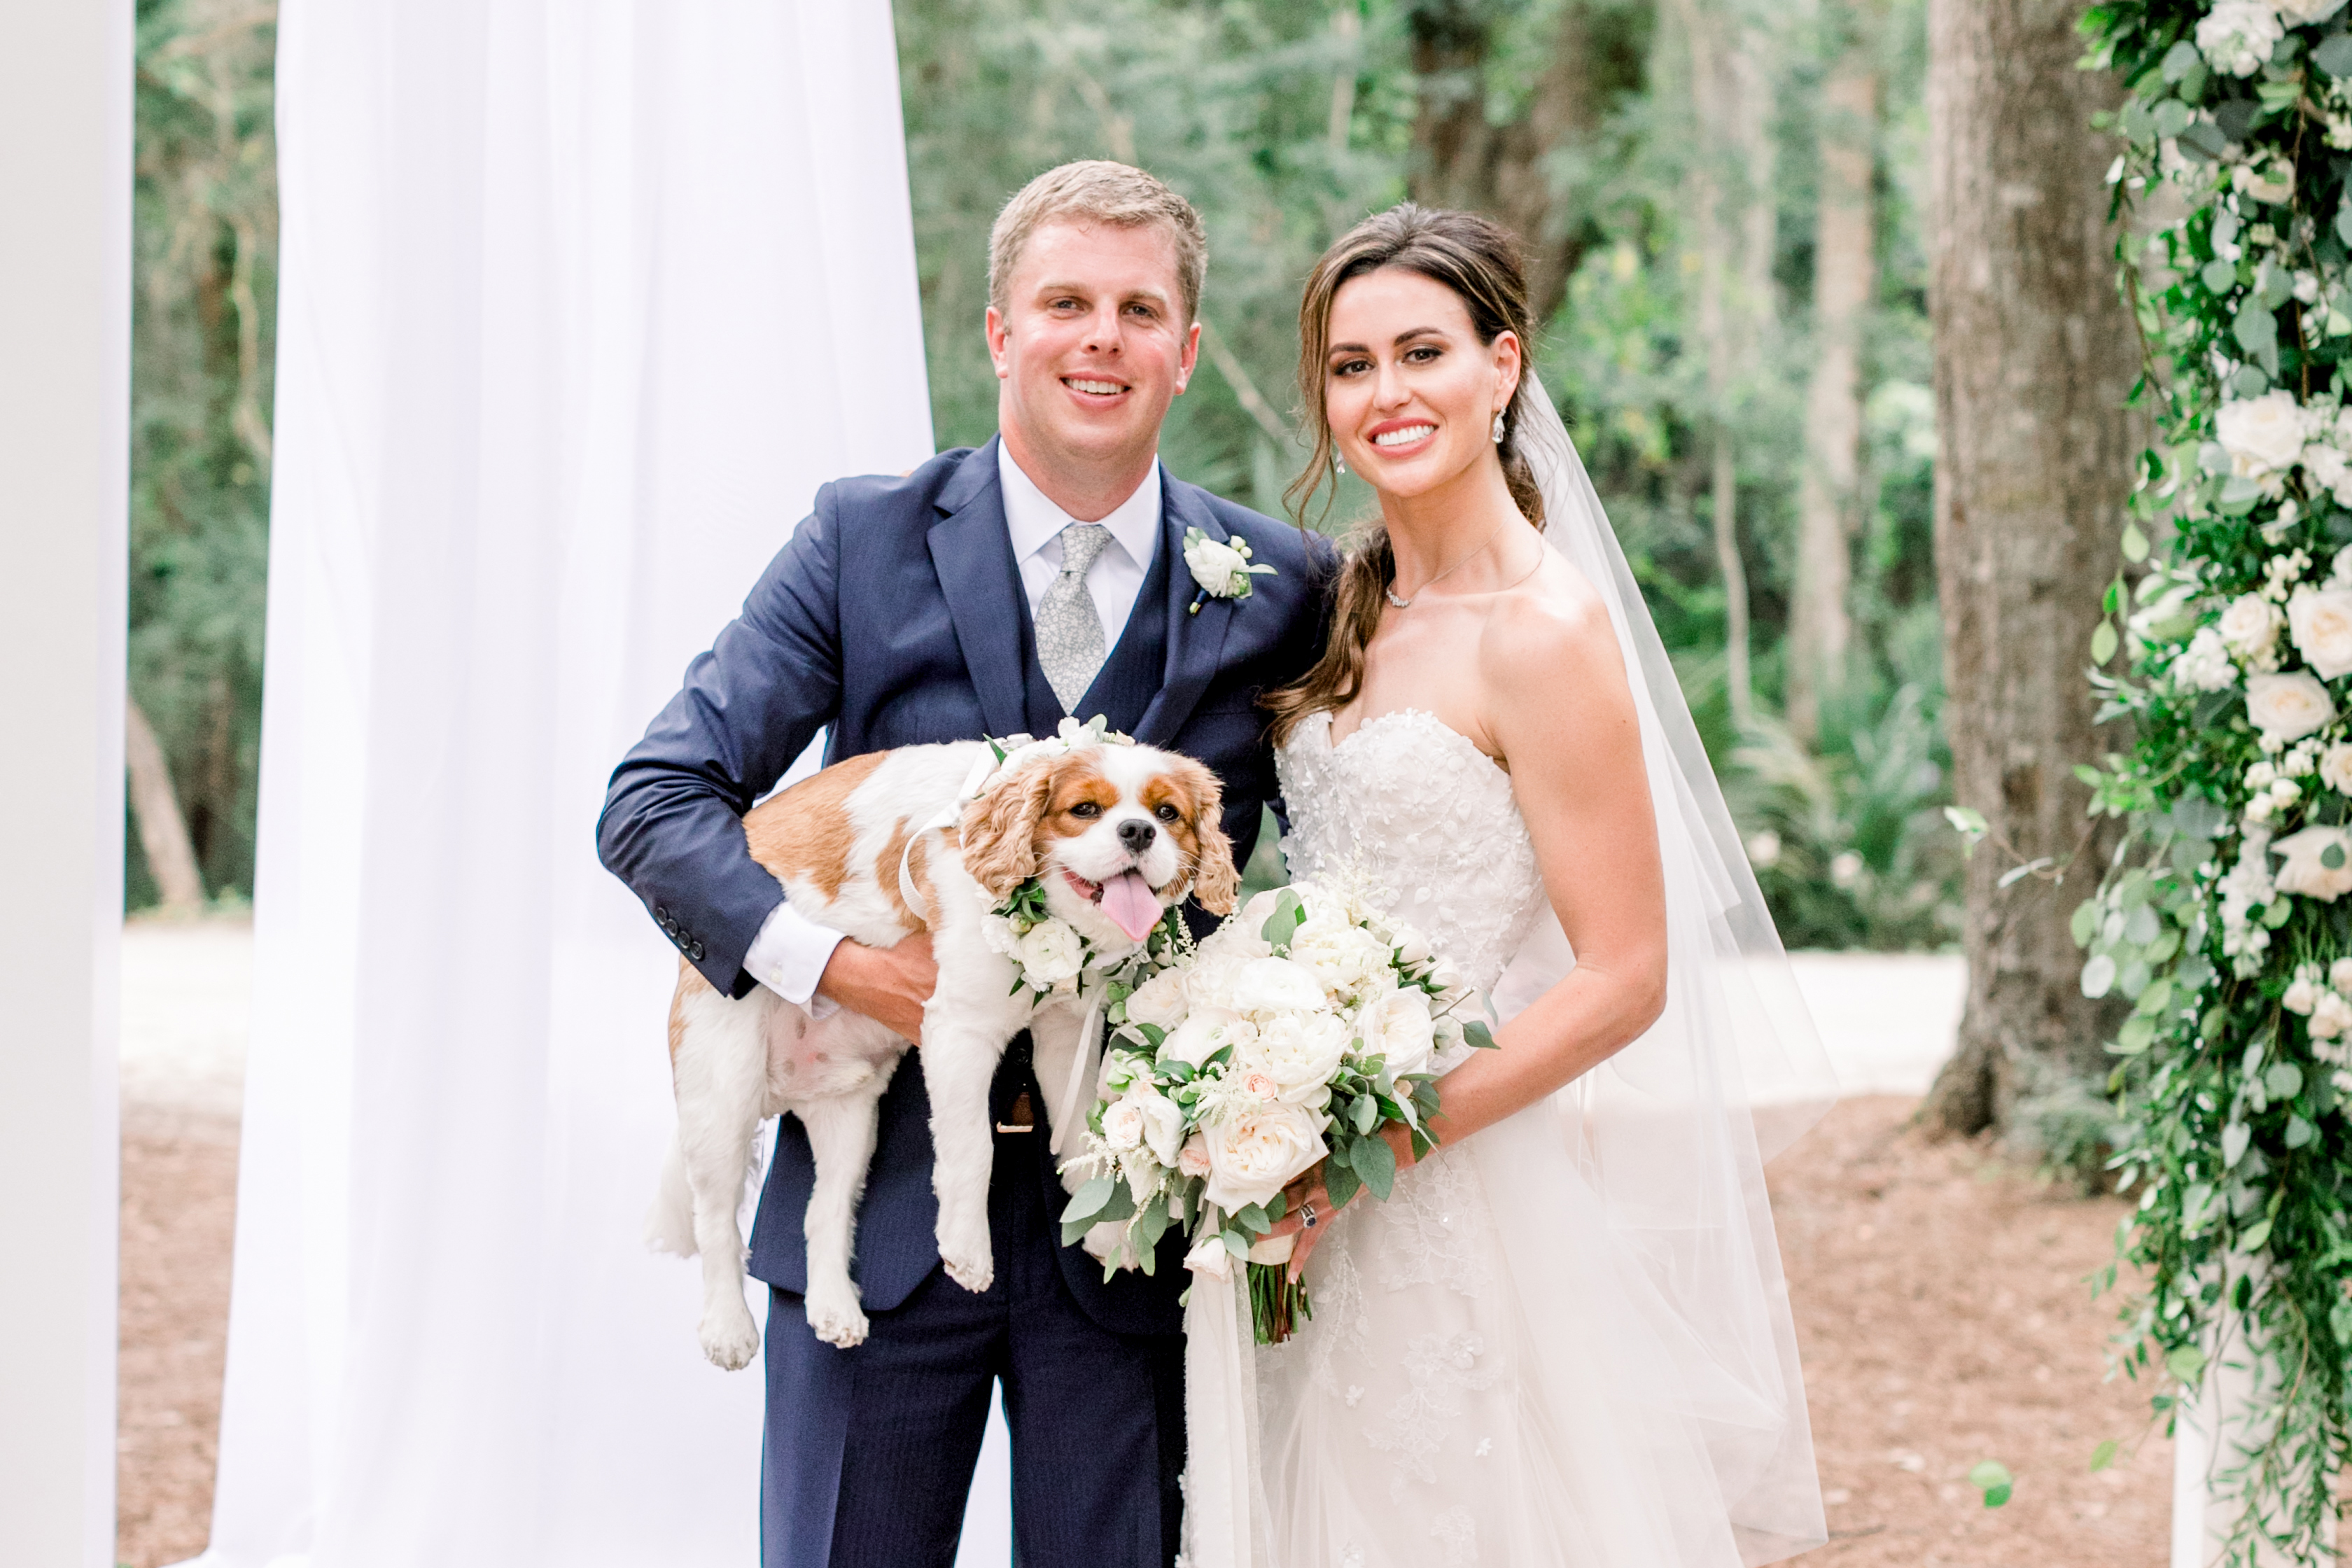 Natalie Broach Photography | Amelia Island Wedding Photographer | Walkers Landing Wedding | Jacksonville, Florida Wedding Photographer | North Florida Photographer